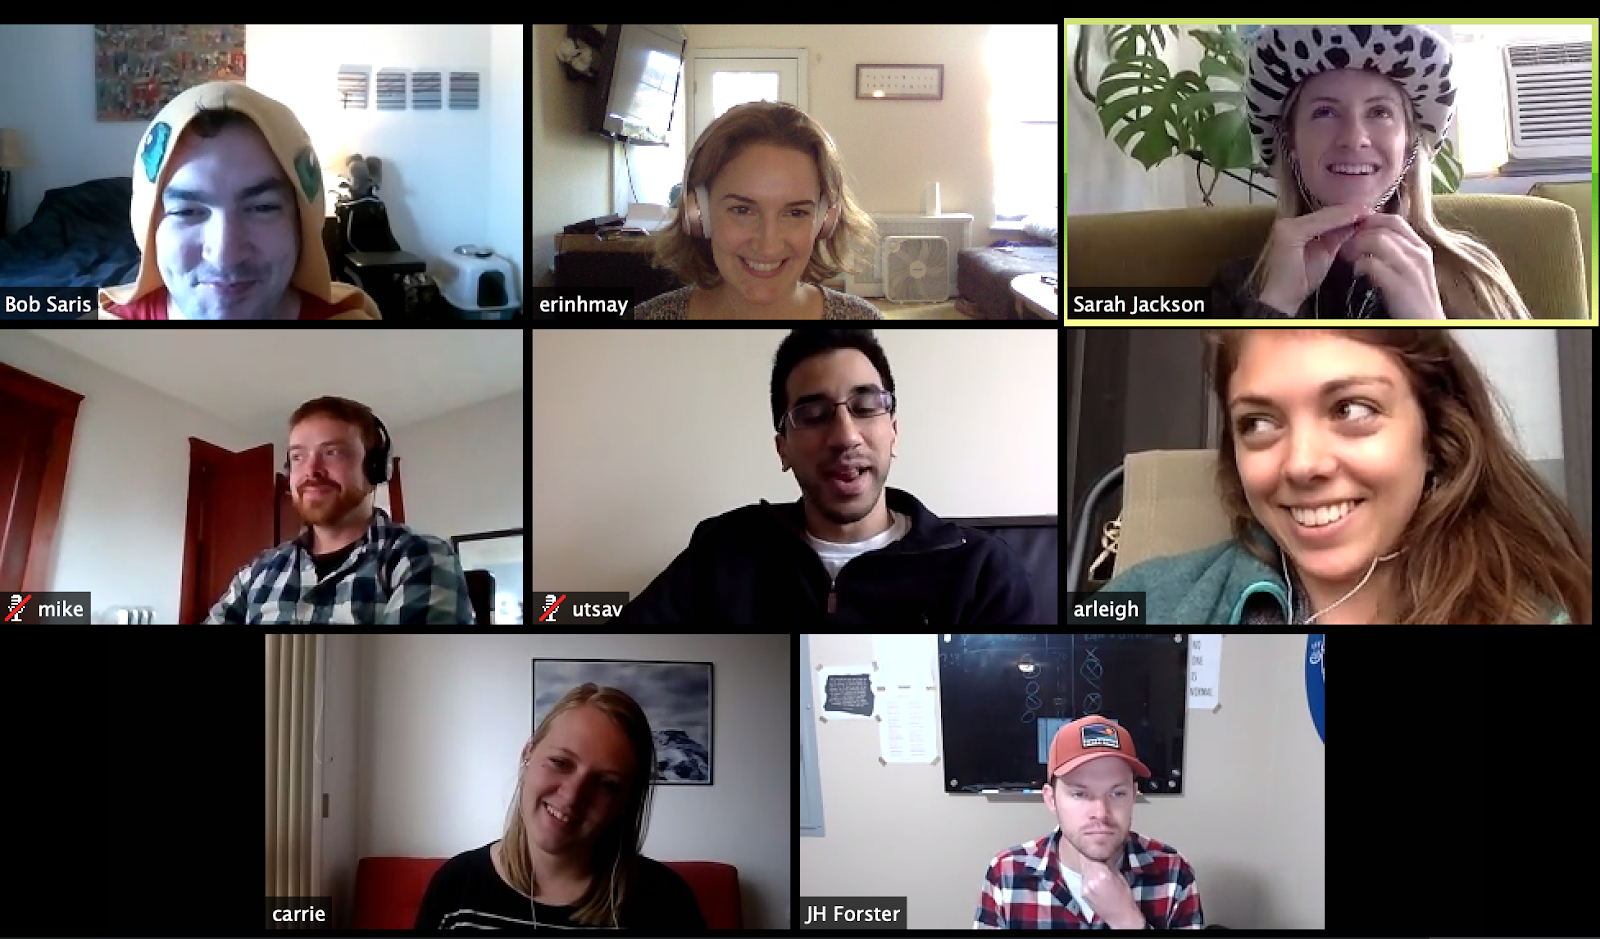 Gallery view of a Zoom meeting with a fully remote team